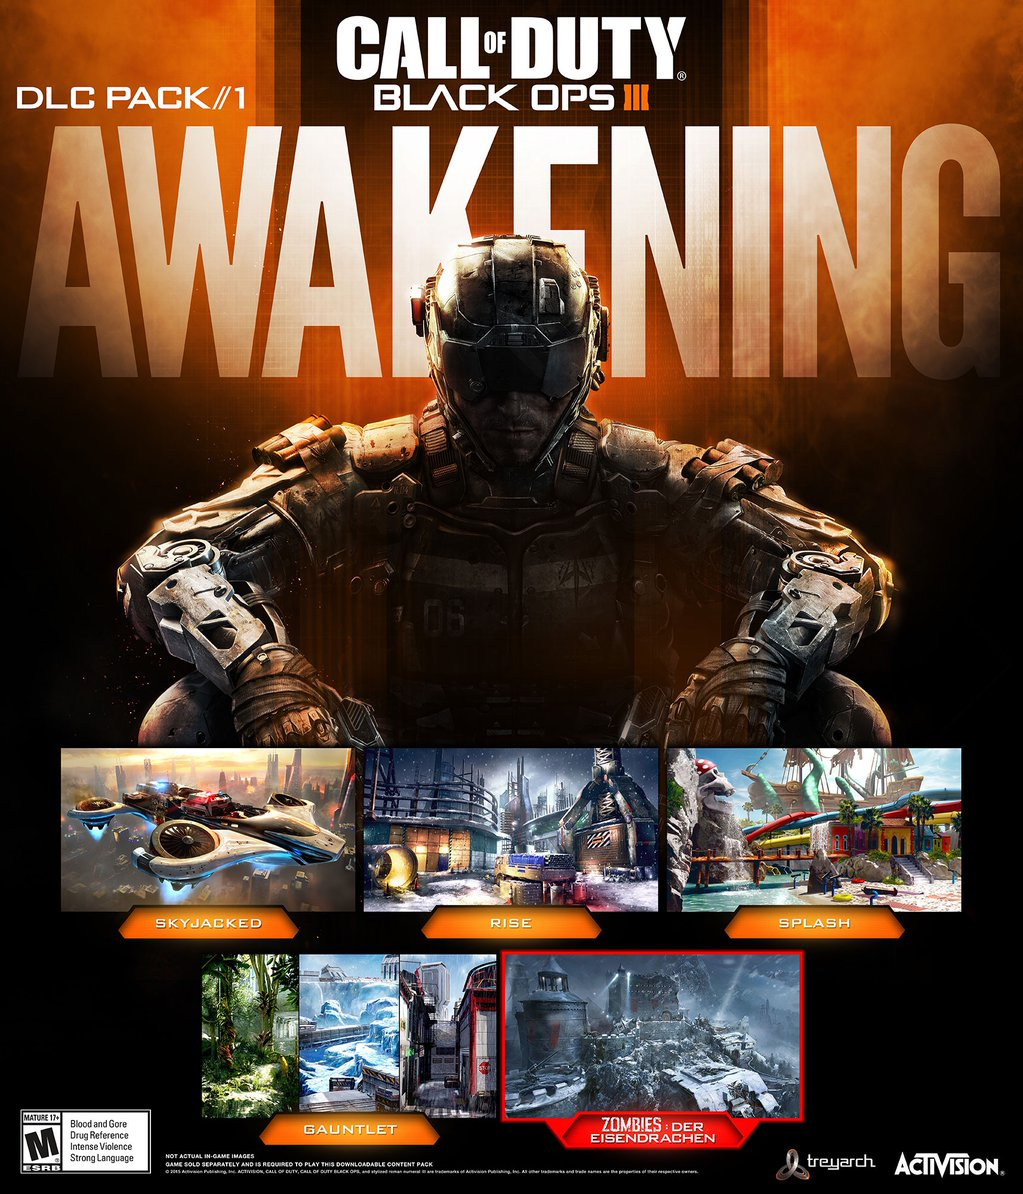 Cod Black Ops Iii Awakening Dlc Promotional Poster Out